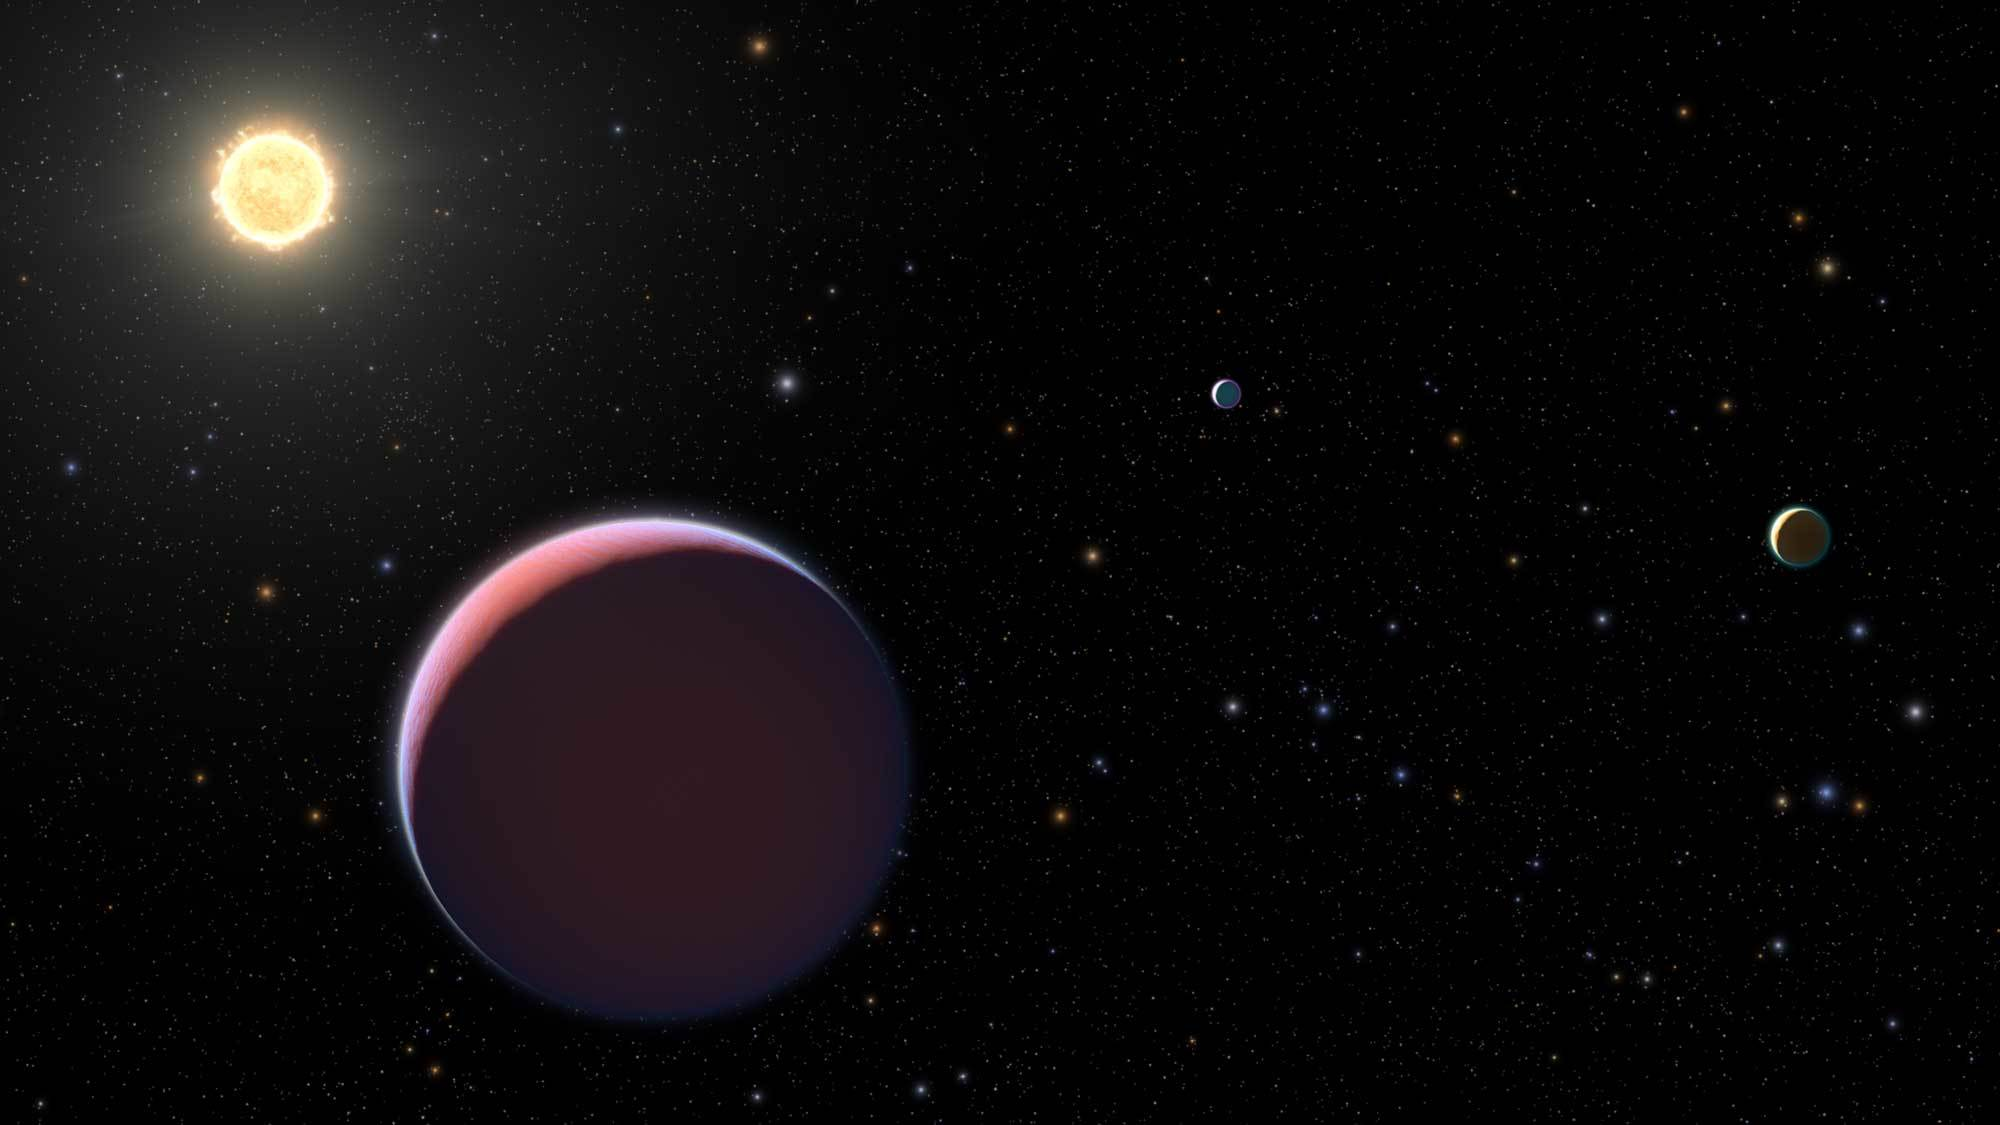 A puffy pink planet is seen in orbit around a star